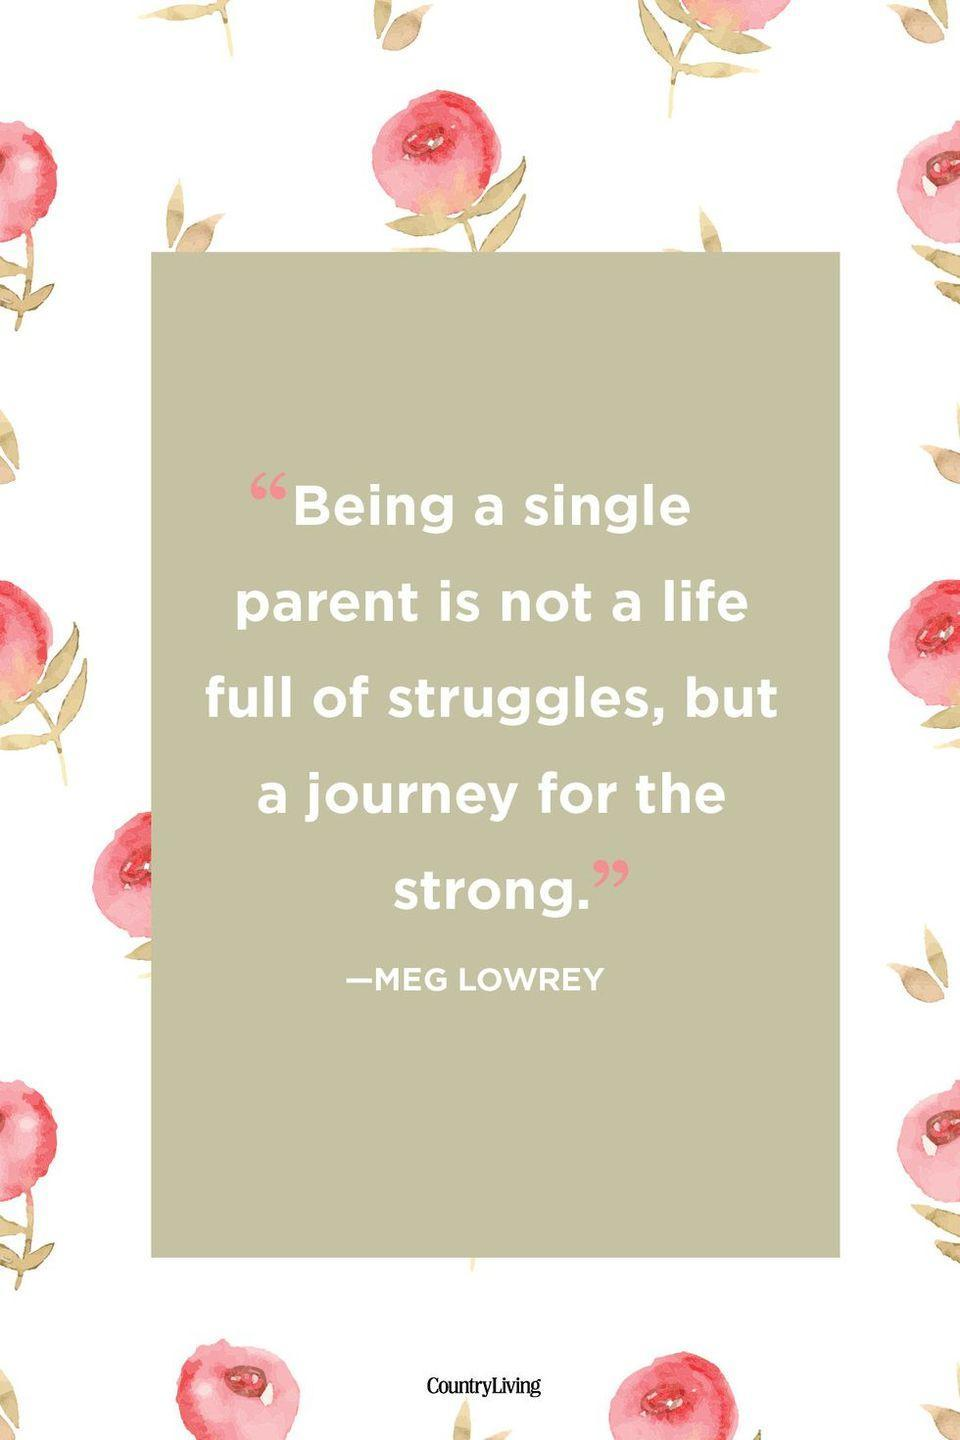 "<p>""Being a single parent is not a life full of struggles, but a journey for the strong.""</p>"